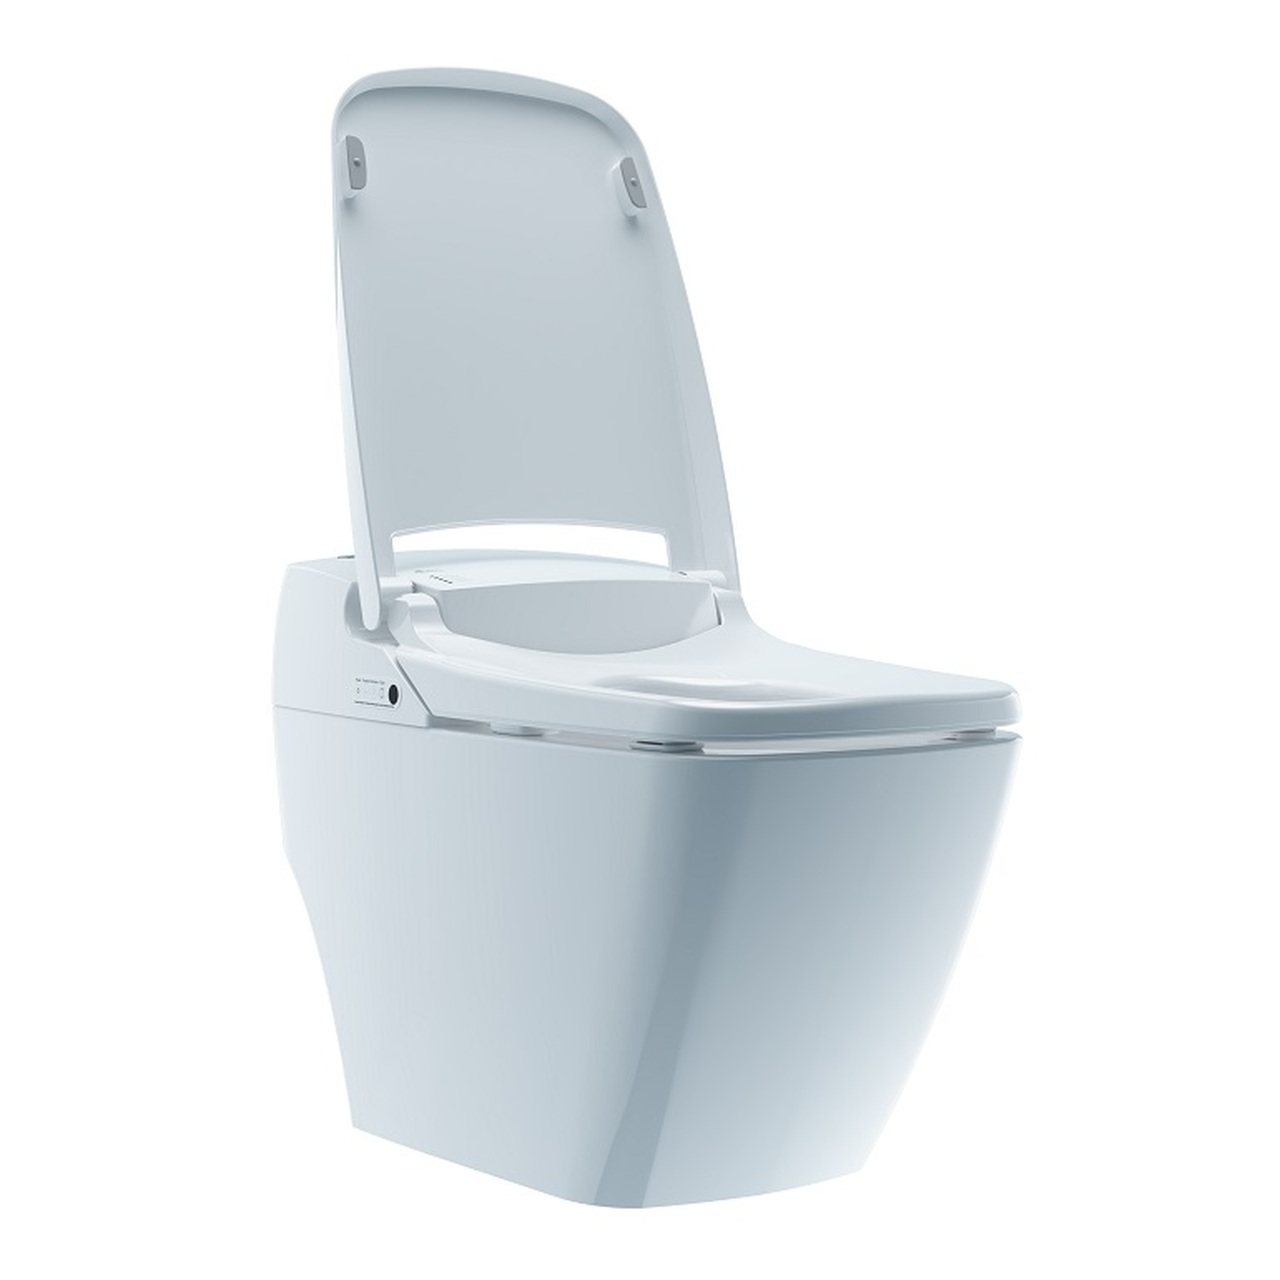 Amazing Bio Bidet Prodigy Smart Toilet P770 P700 Gmtry Best Dining Table And Chair Ideas Images Gmtryco